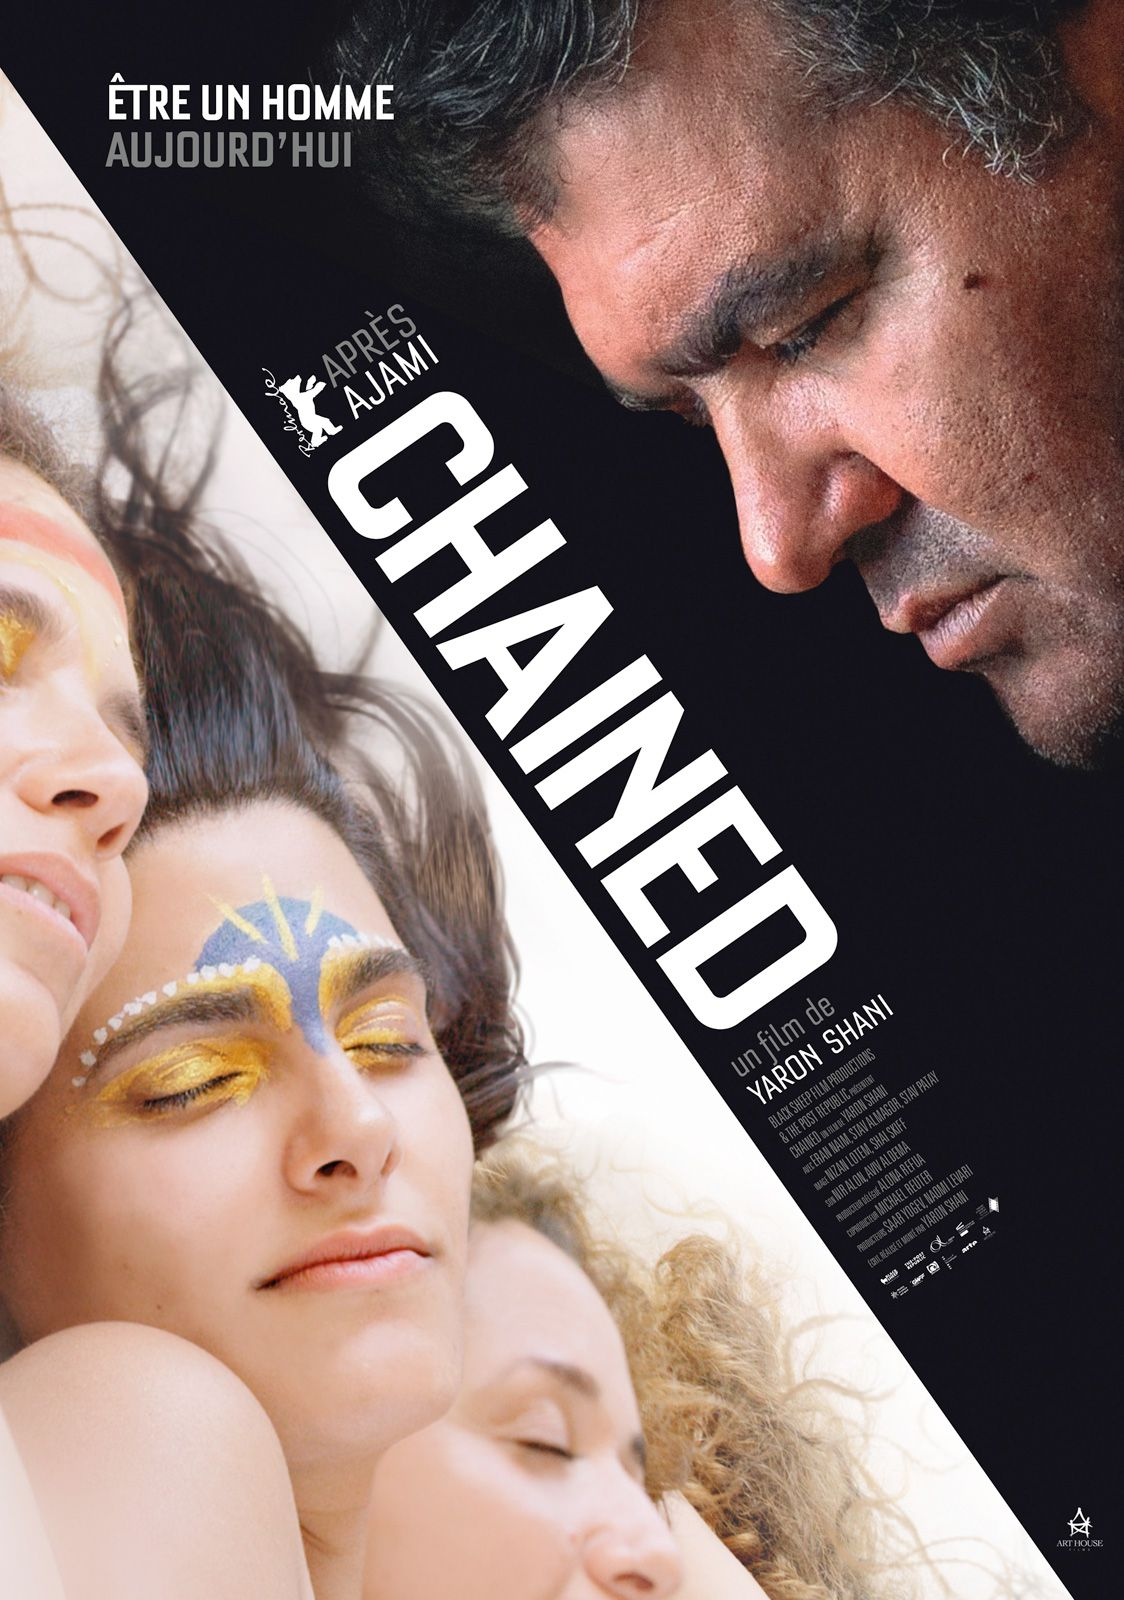 Chained (film Israel 2020)